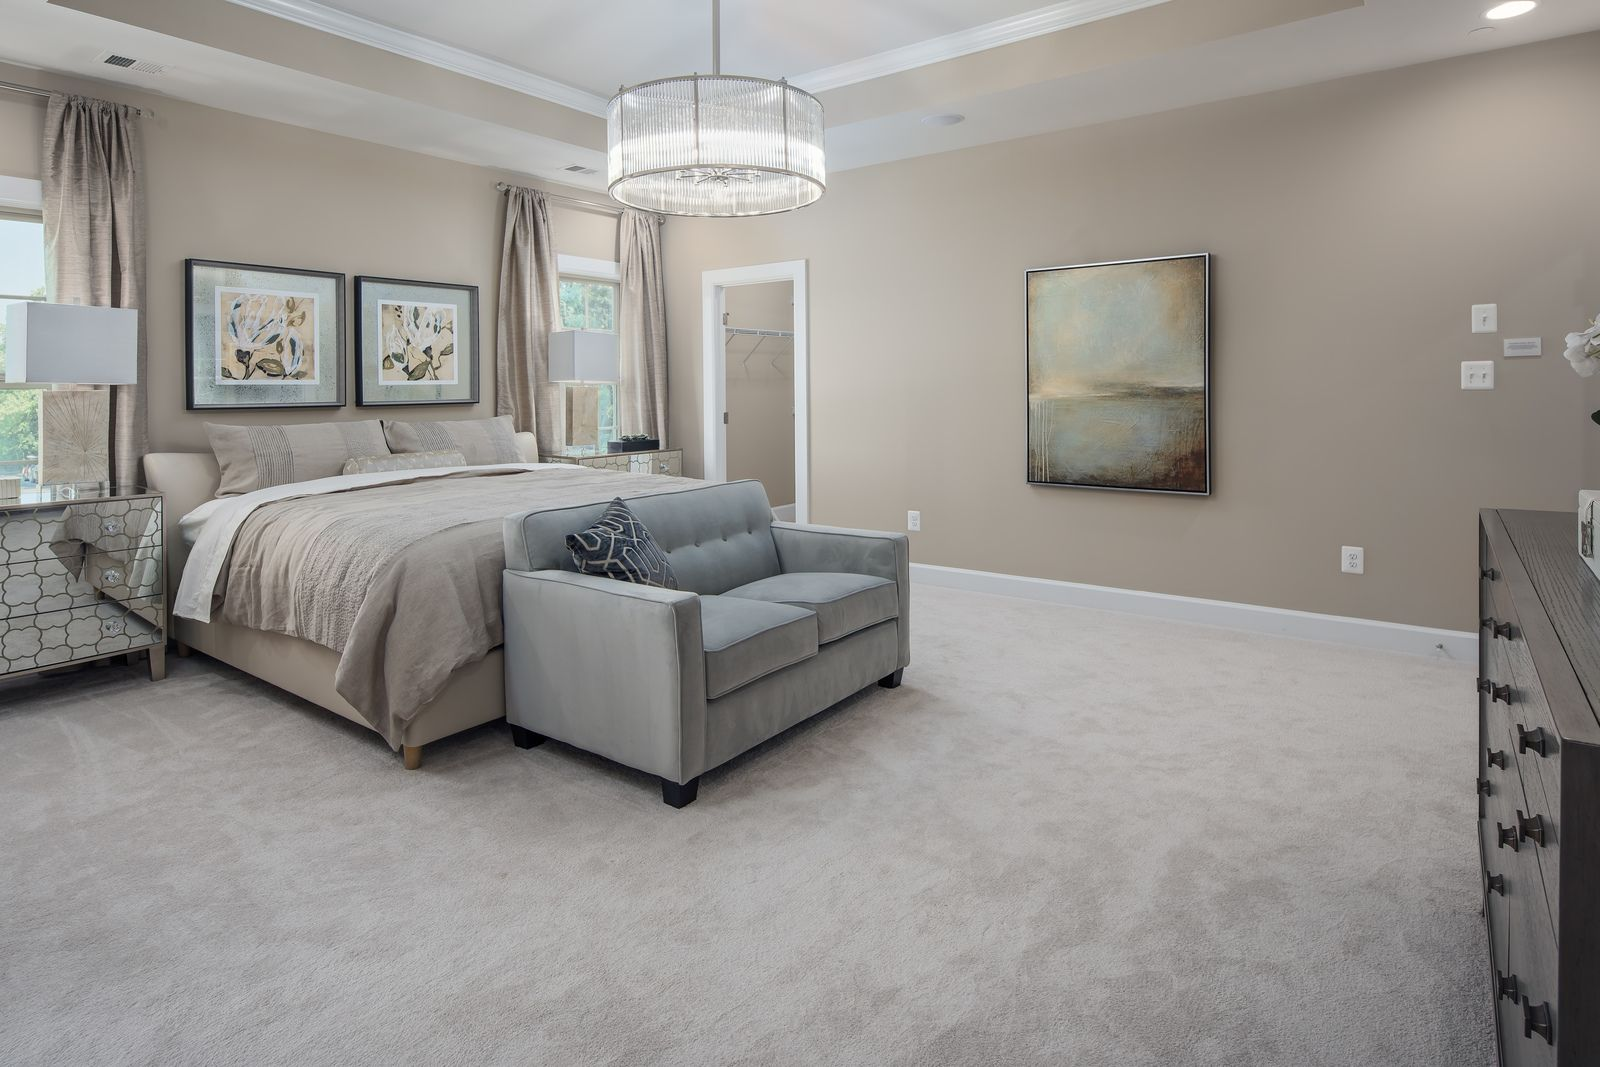 Bedroom featured in the Danville By NVHomes in Washington, MD